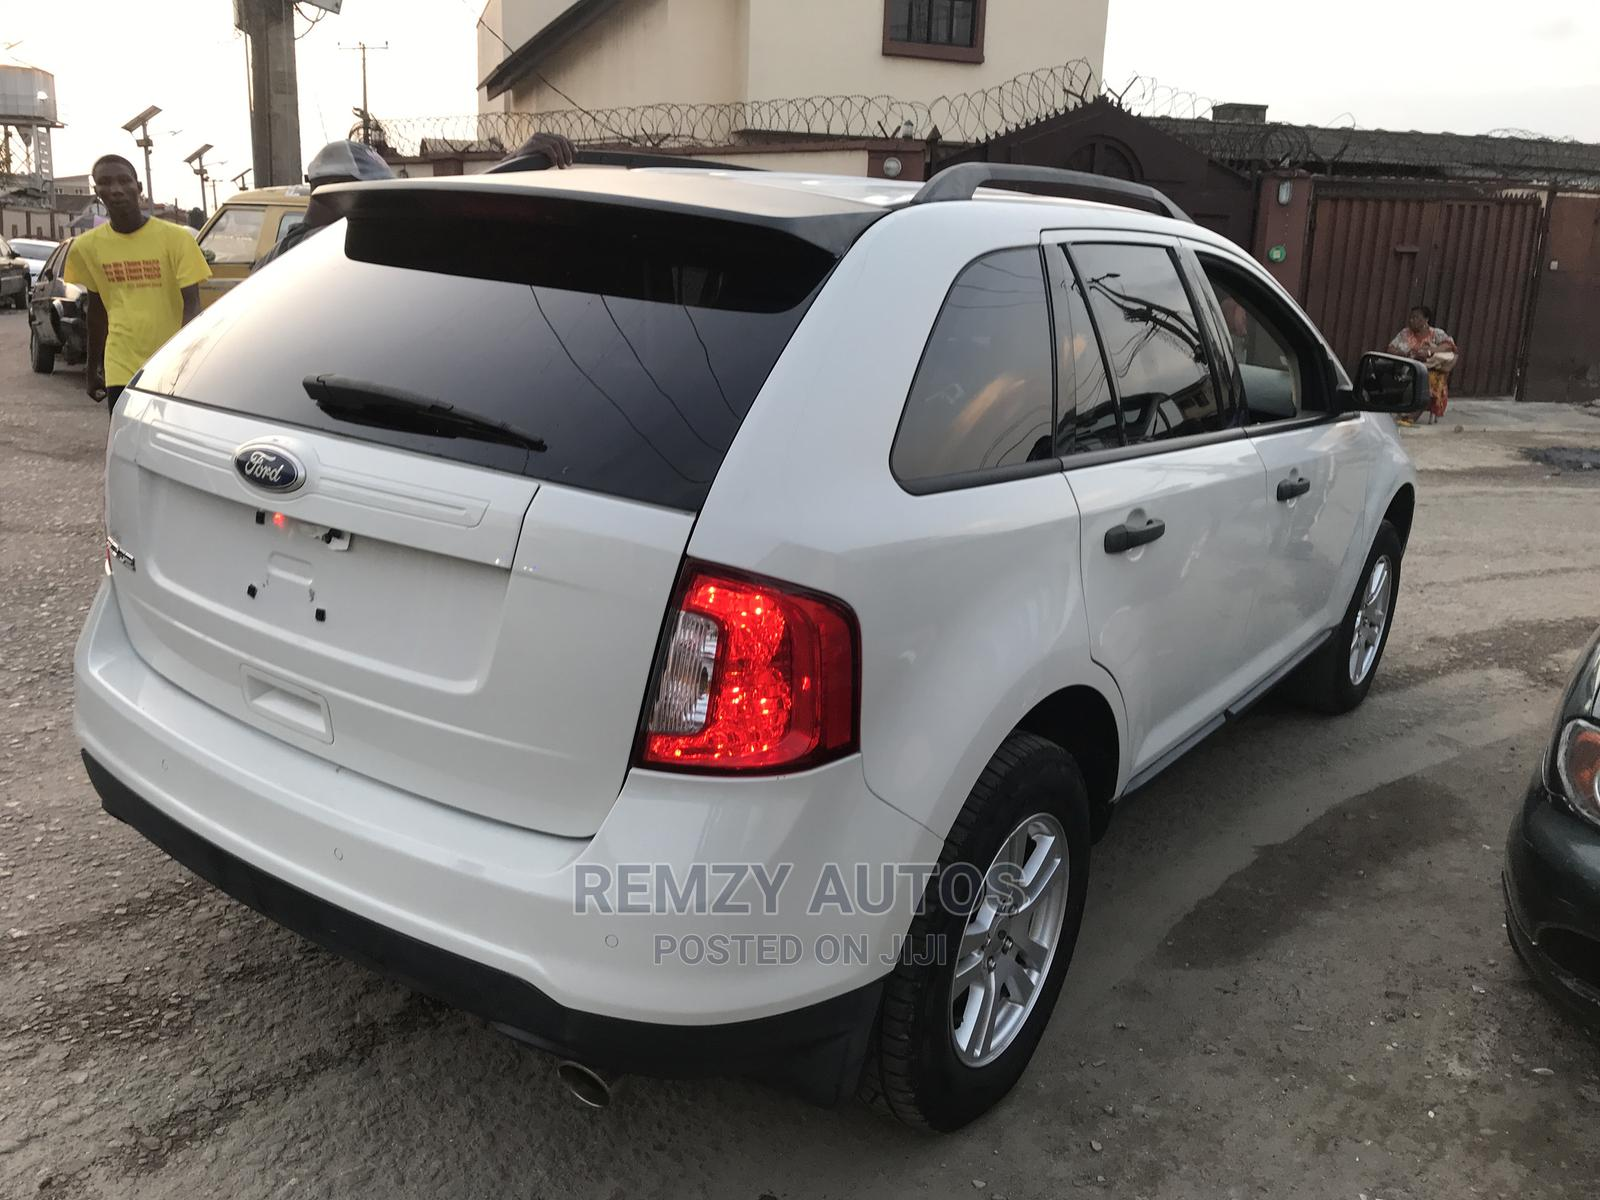 Archive: Ford Edge 2011 SE 4dr FWD (3.5L 6cyl 6A) Pearl